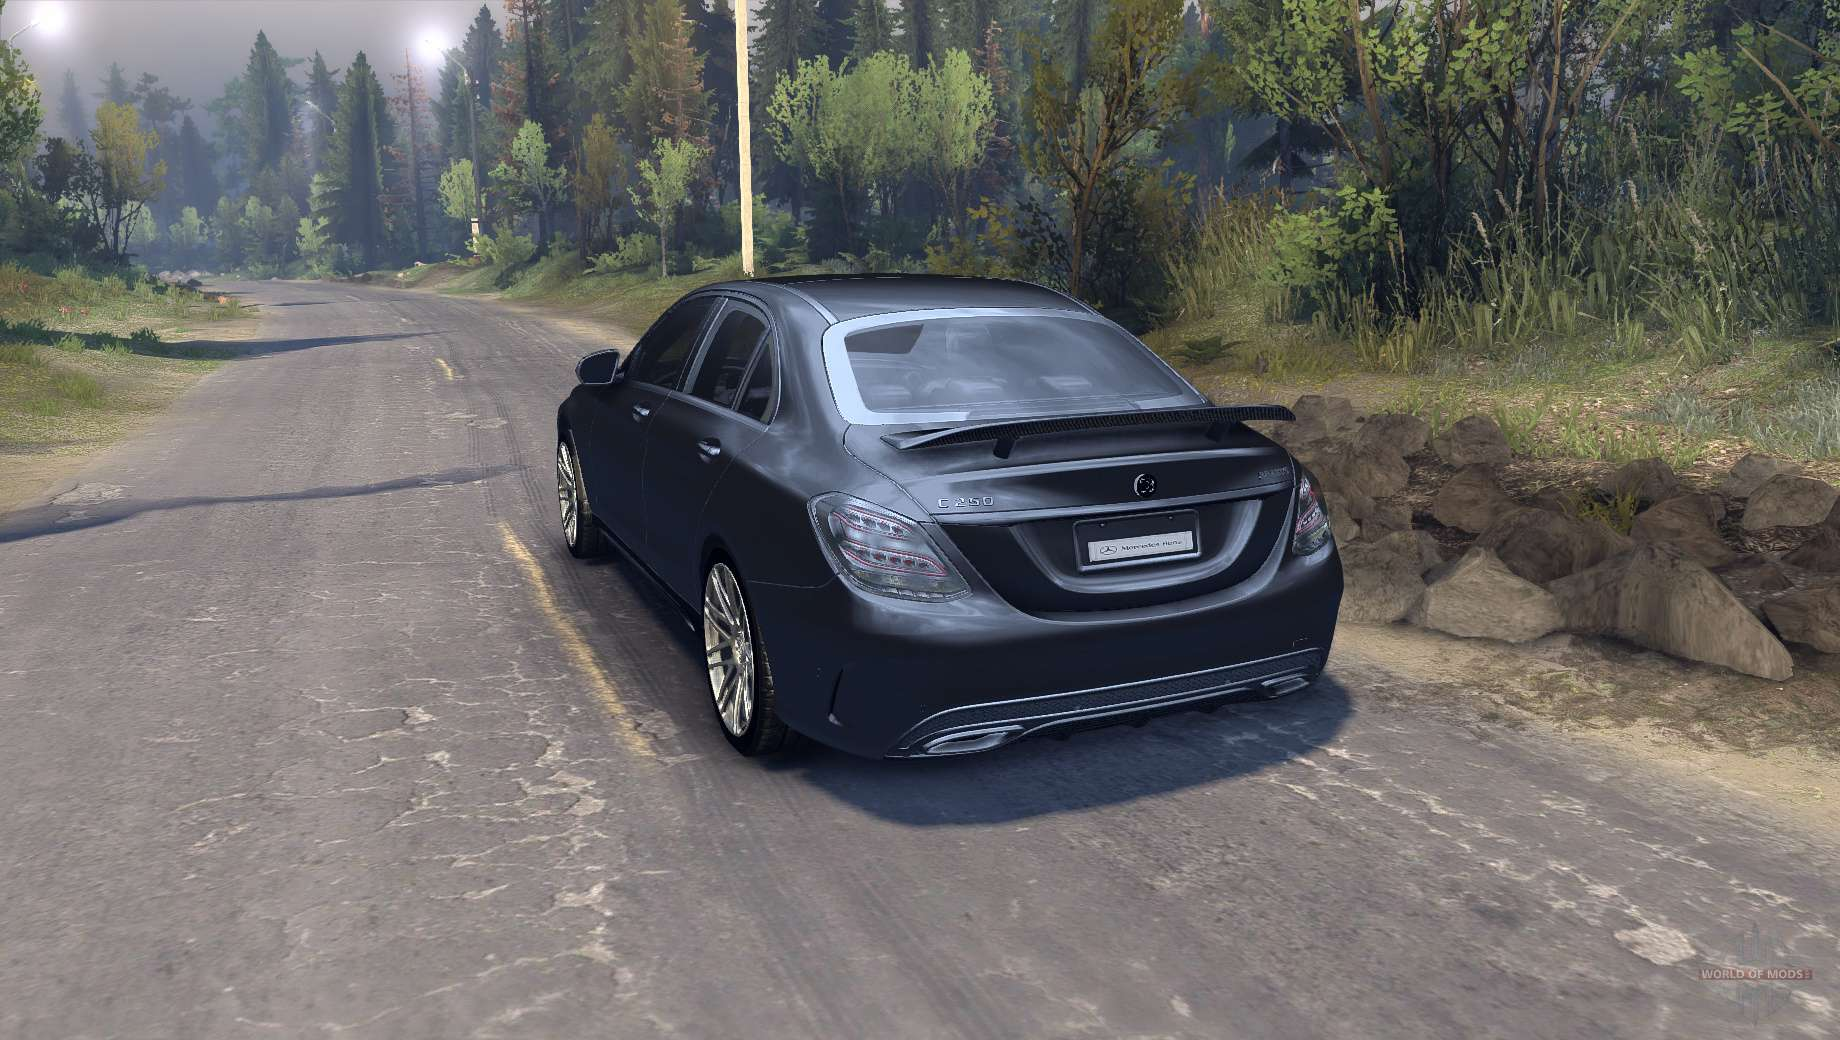 mercedes benz c250 brabus for spin tiresmod for spintires 2014